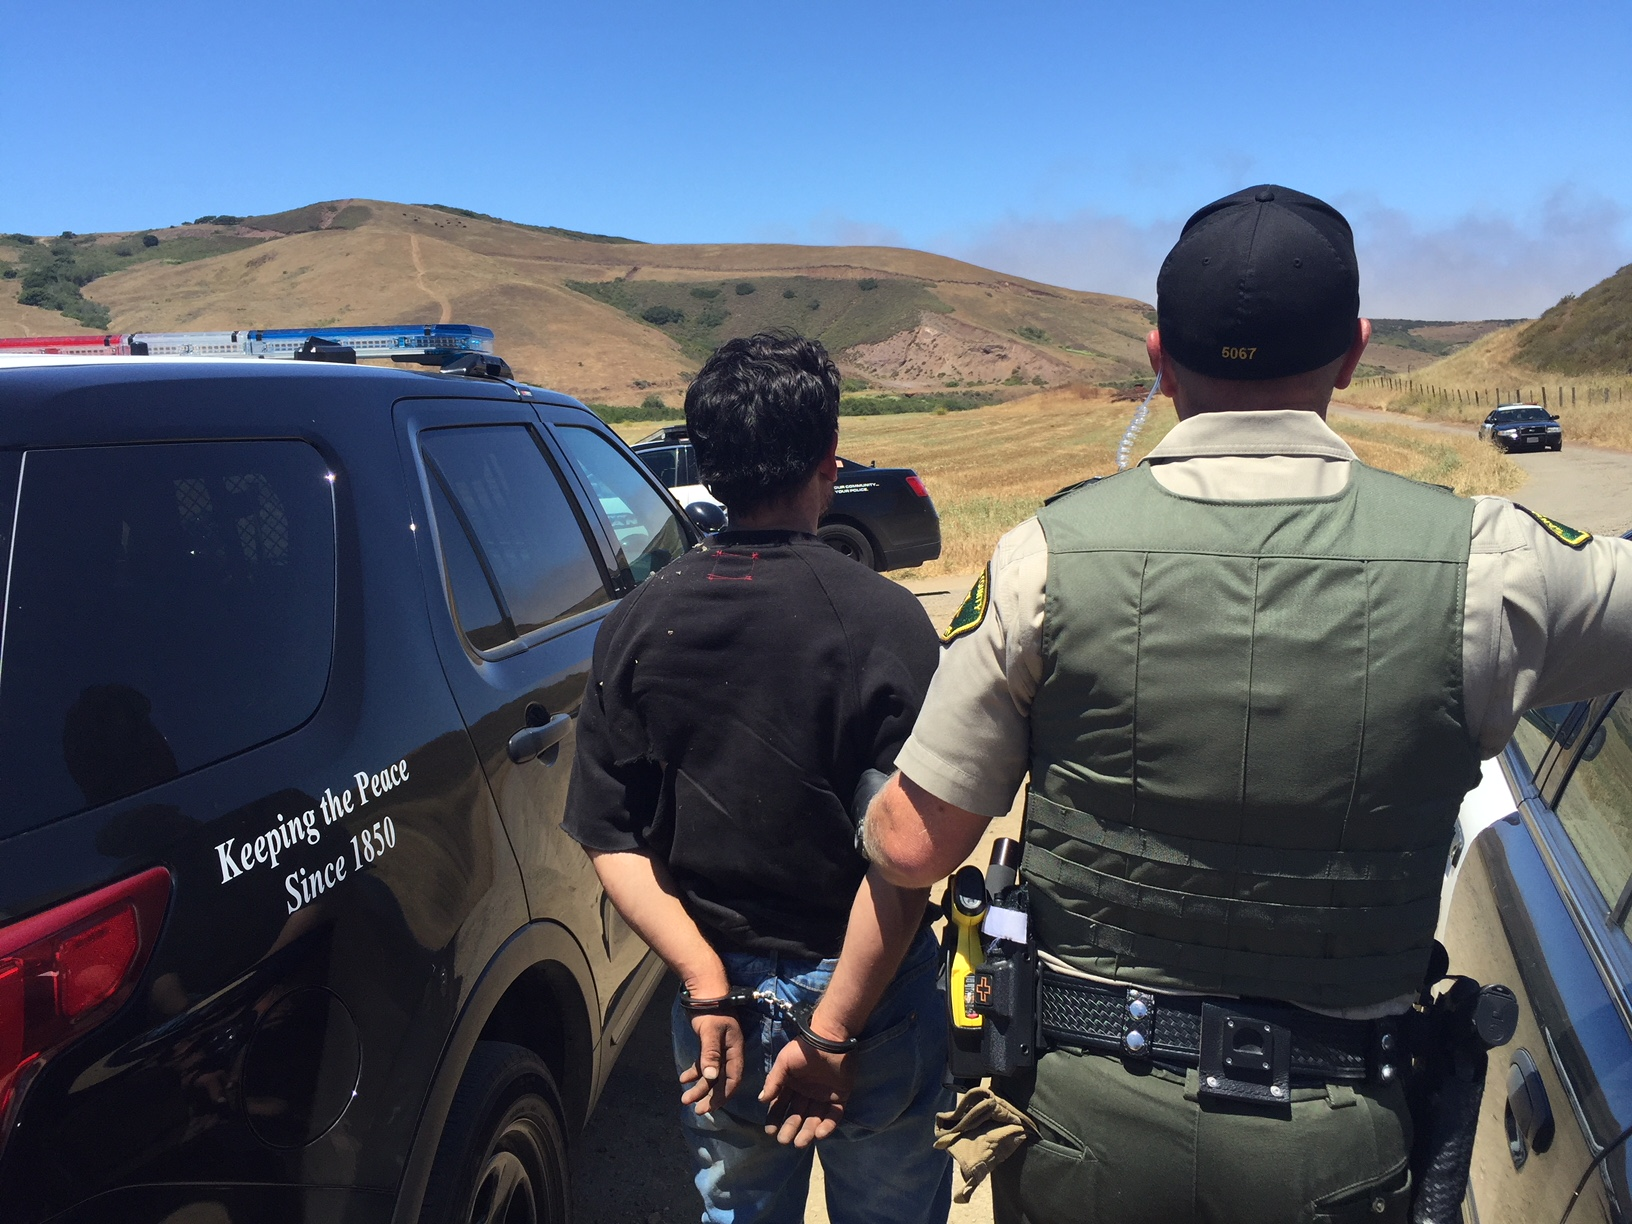 The Santa Barbara County Sheriff's Office provided this image of officers arresting Brandon Morales-Gomez in Guadalupe on June 22, 2018.